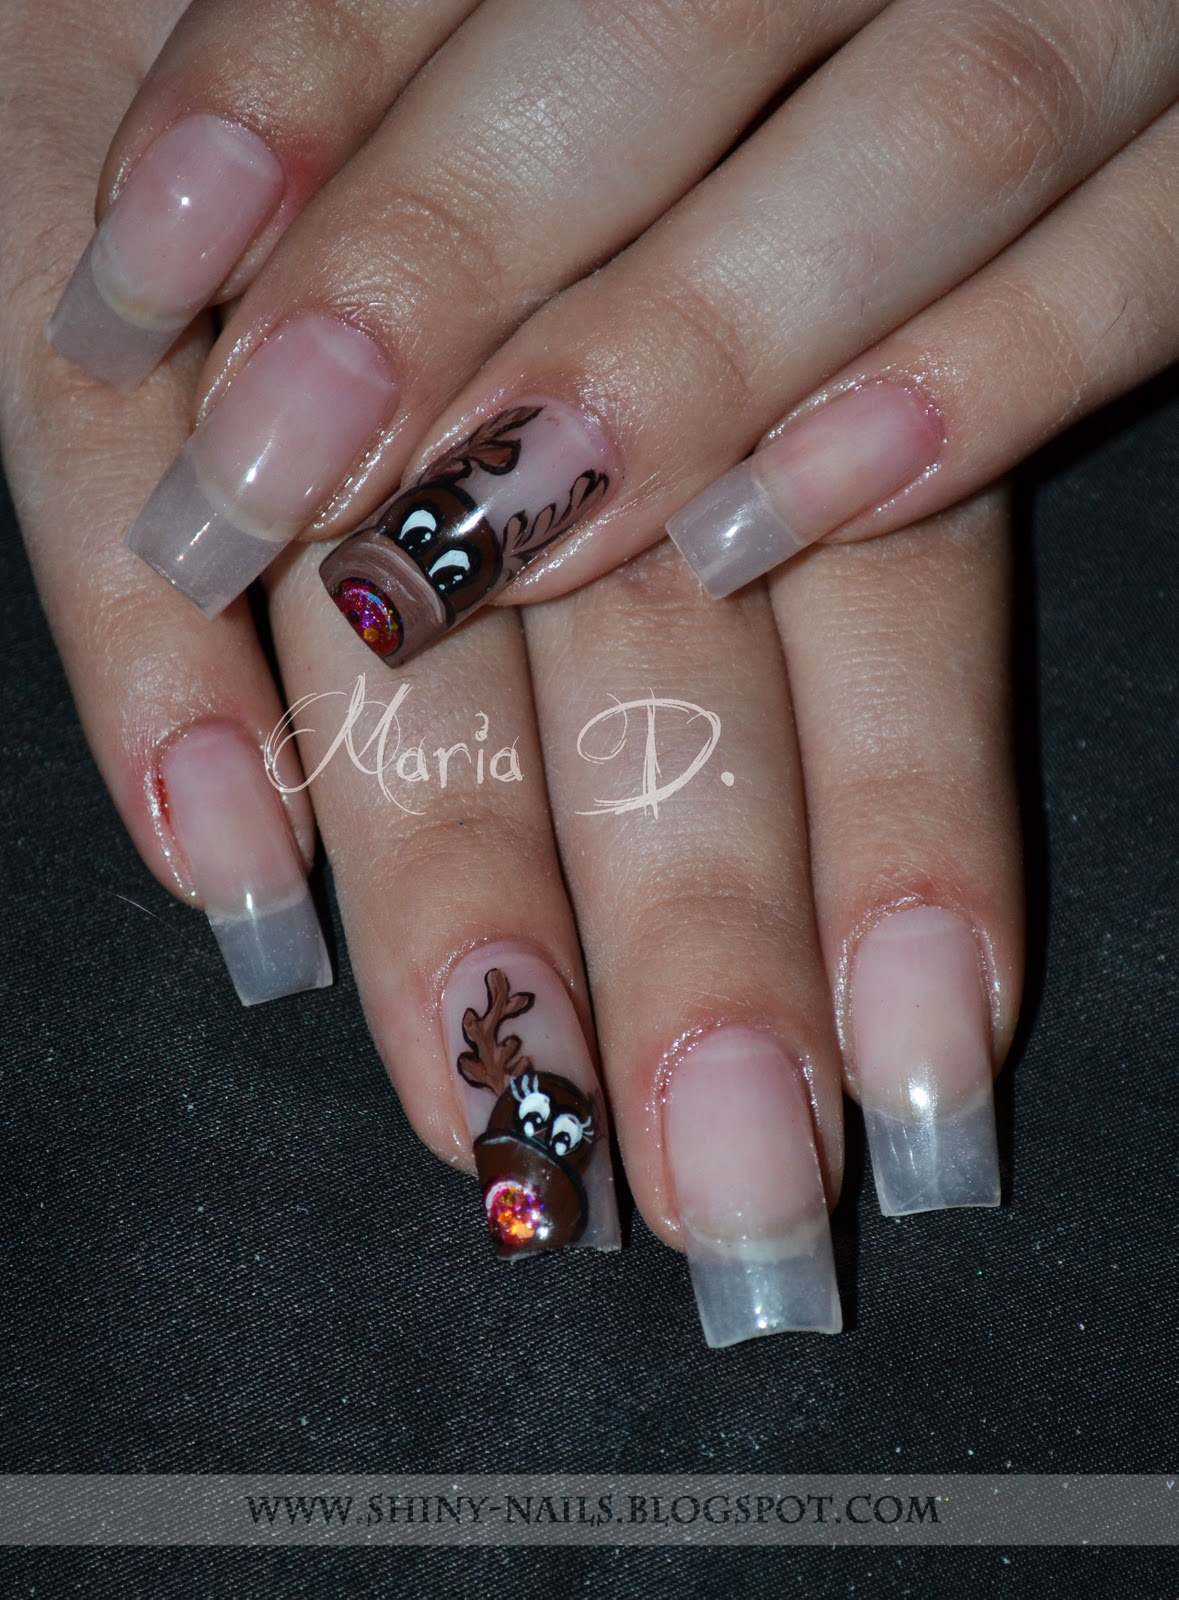 Shiny-Nails by Maria D.: Rudolf on Gel Construction